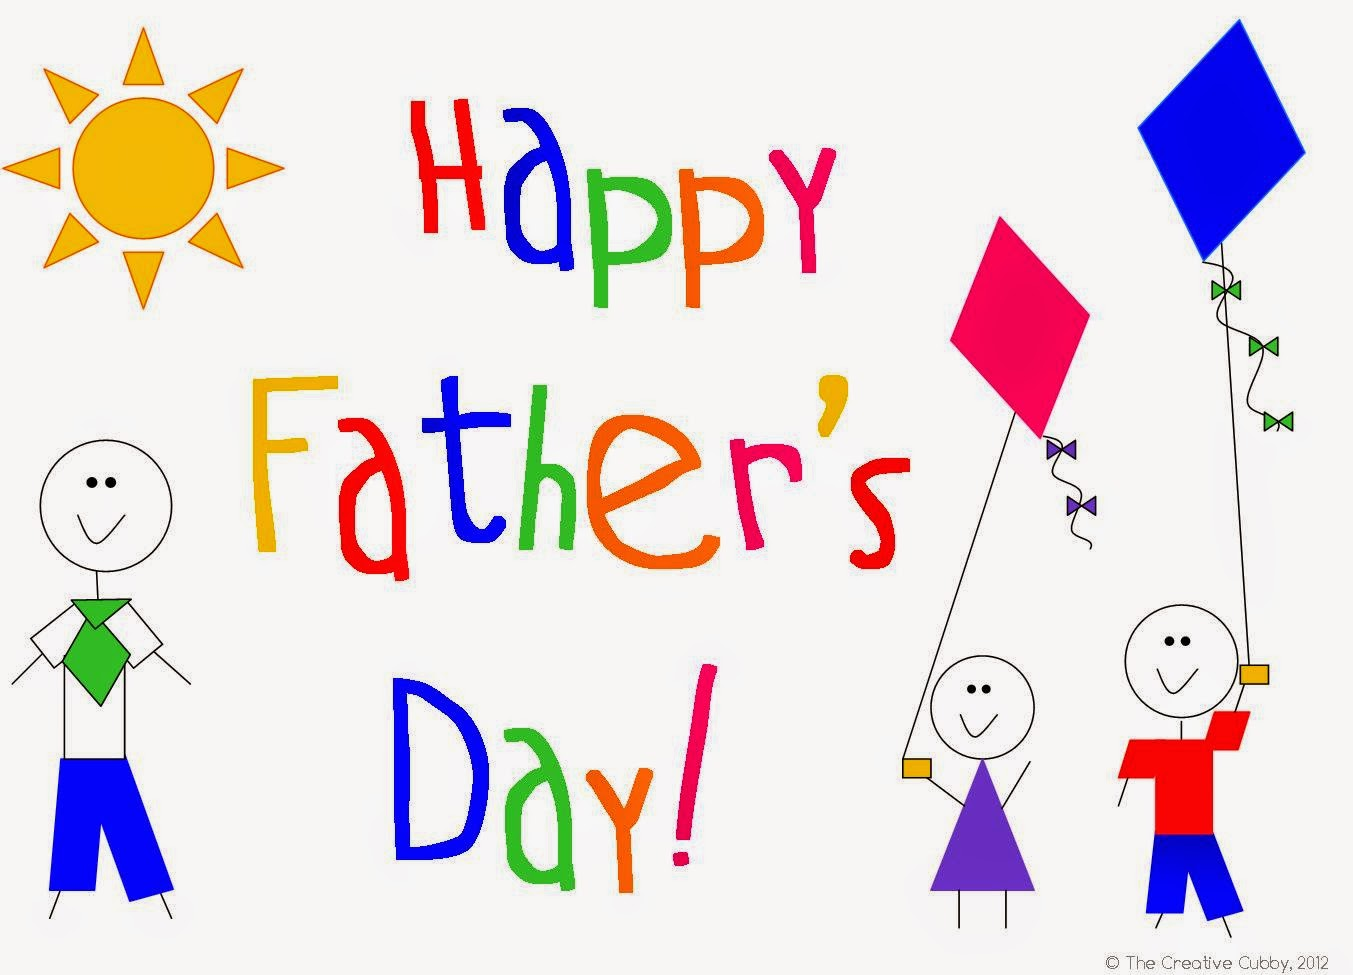 2015 advance happy fathers day wishes quotes sms text messages